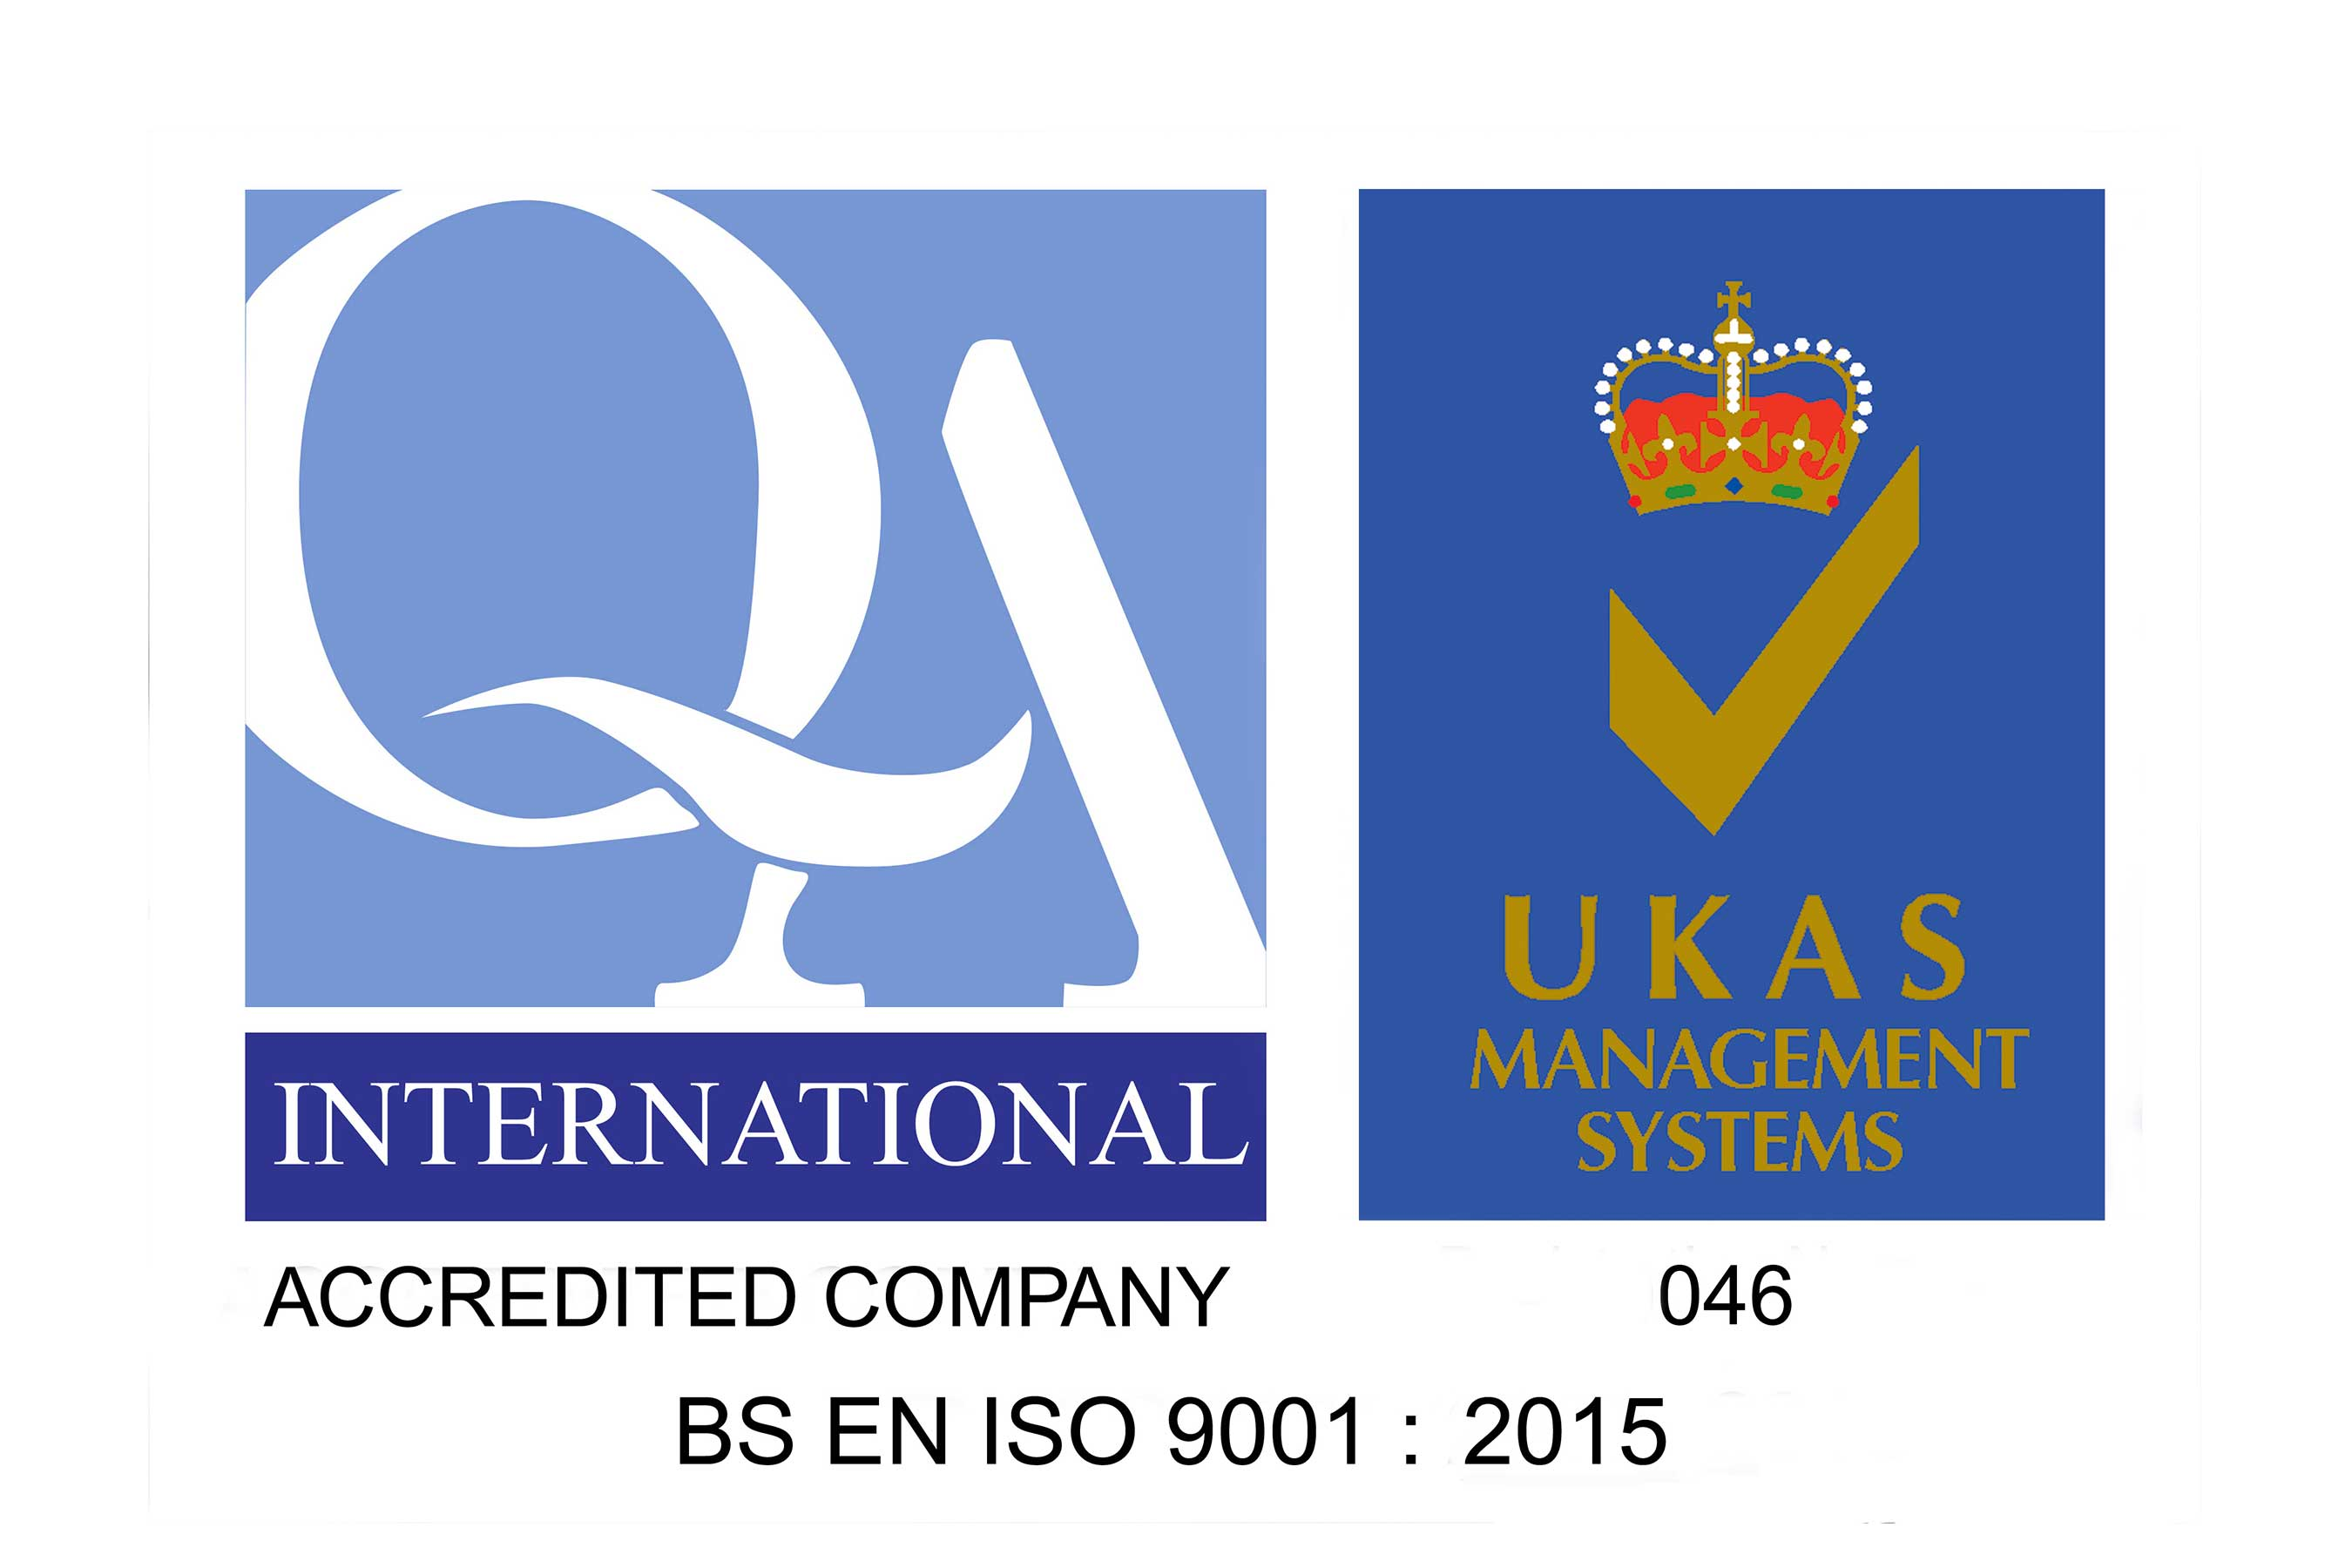 Primeast-ISO:9001 accredited since 1998